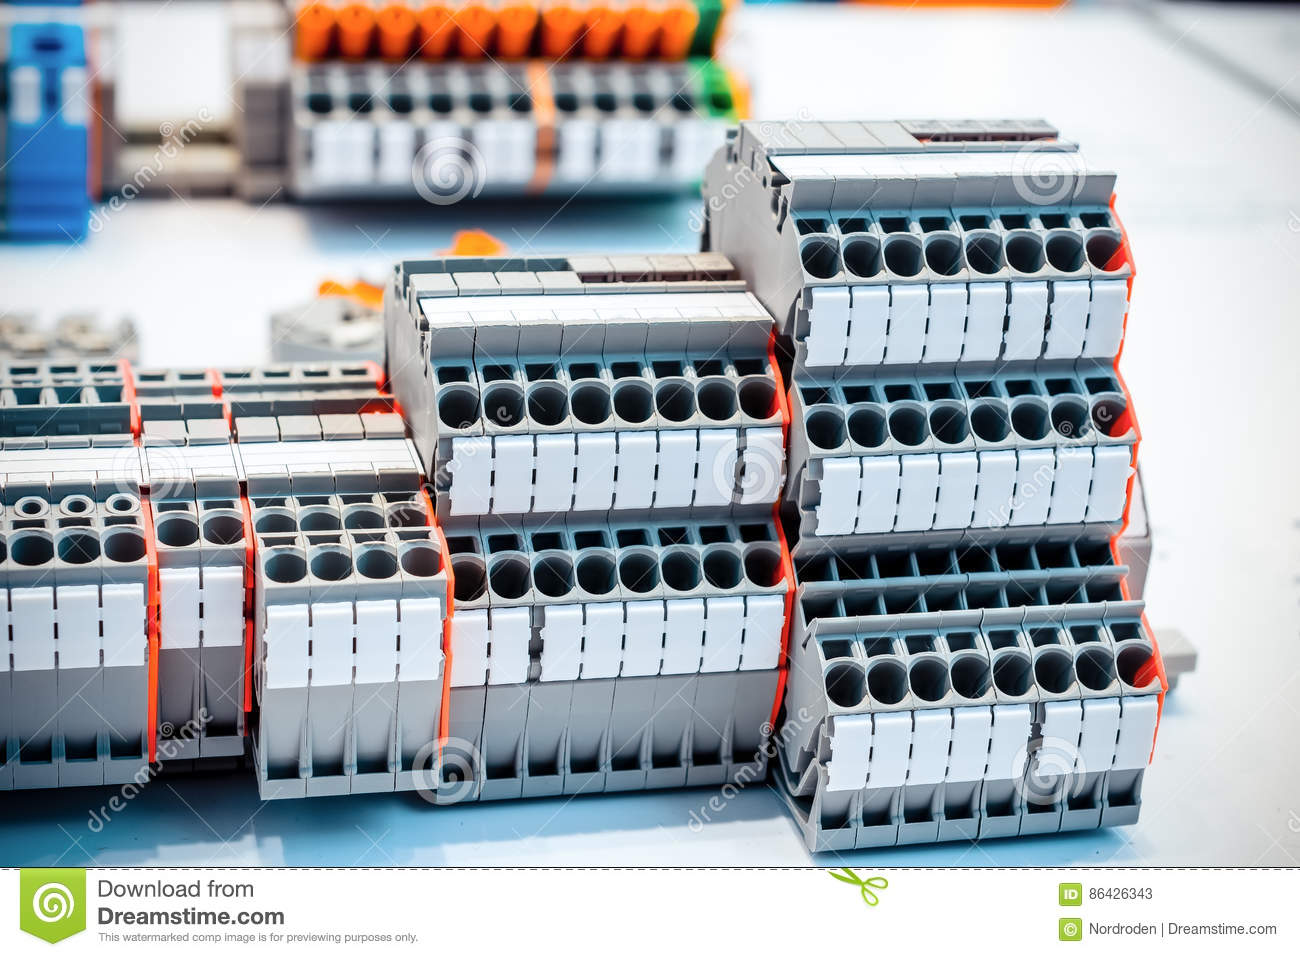 Outstanding Close Up Wiring Connectors Terminal Blocks Stock Image Image Of Wiring 101 Breceaxxcnl